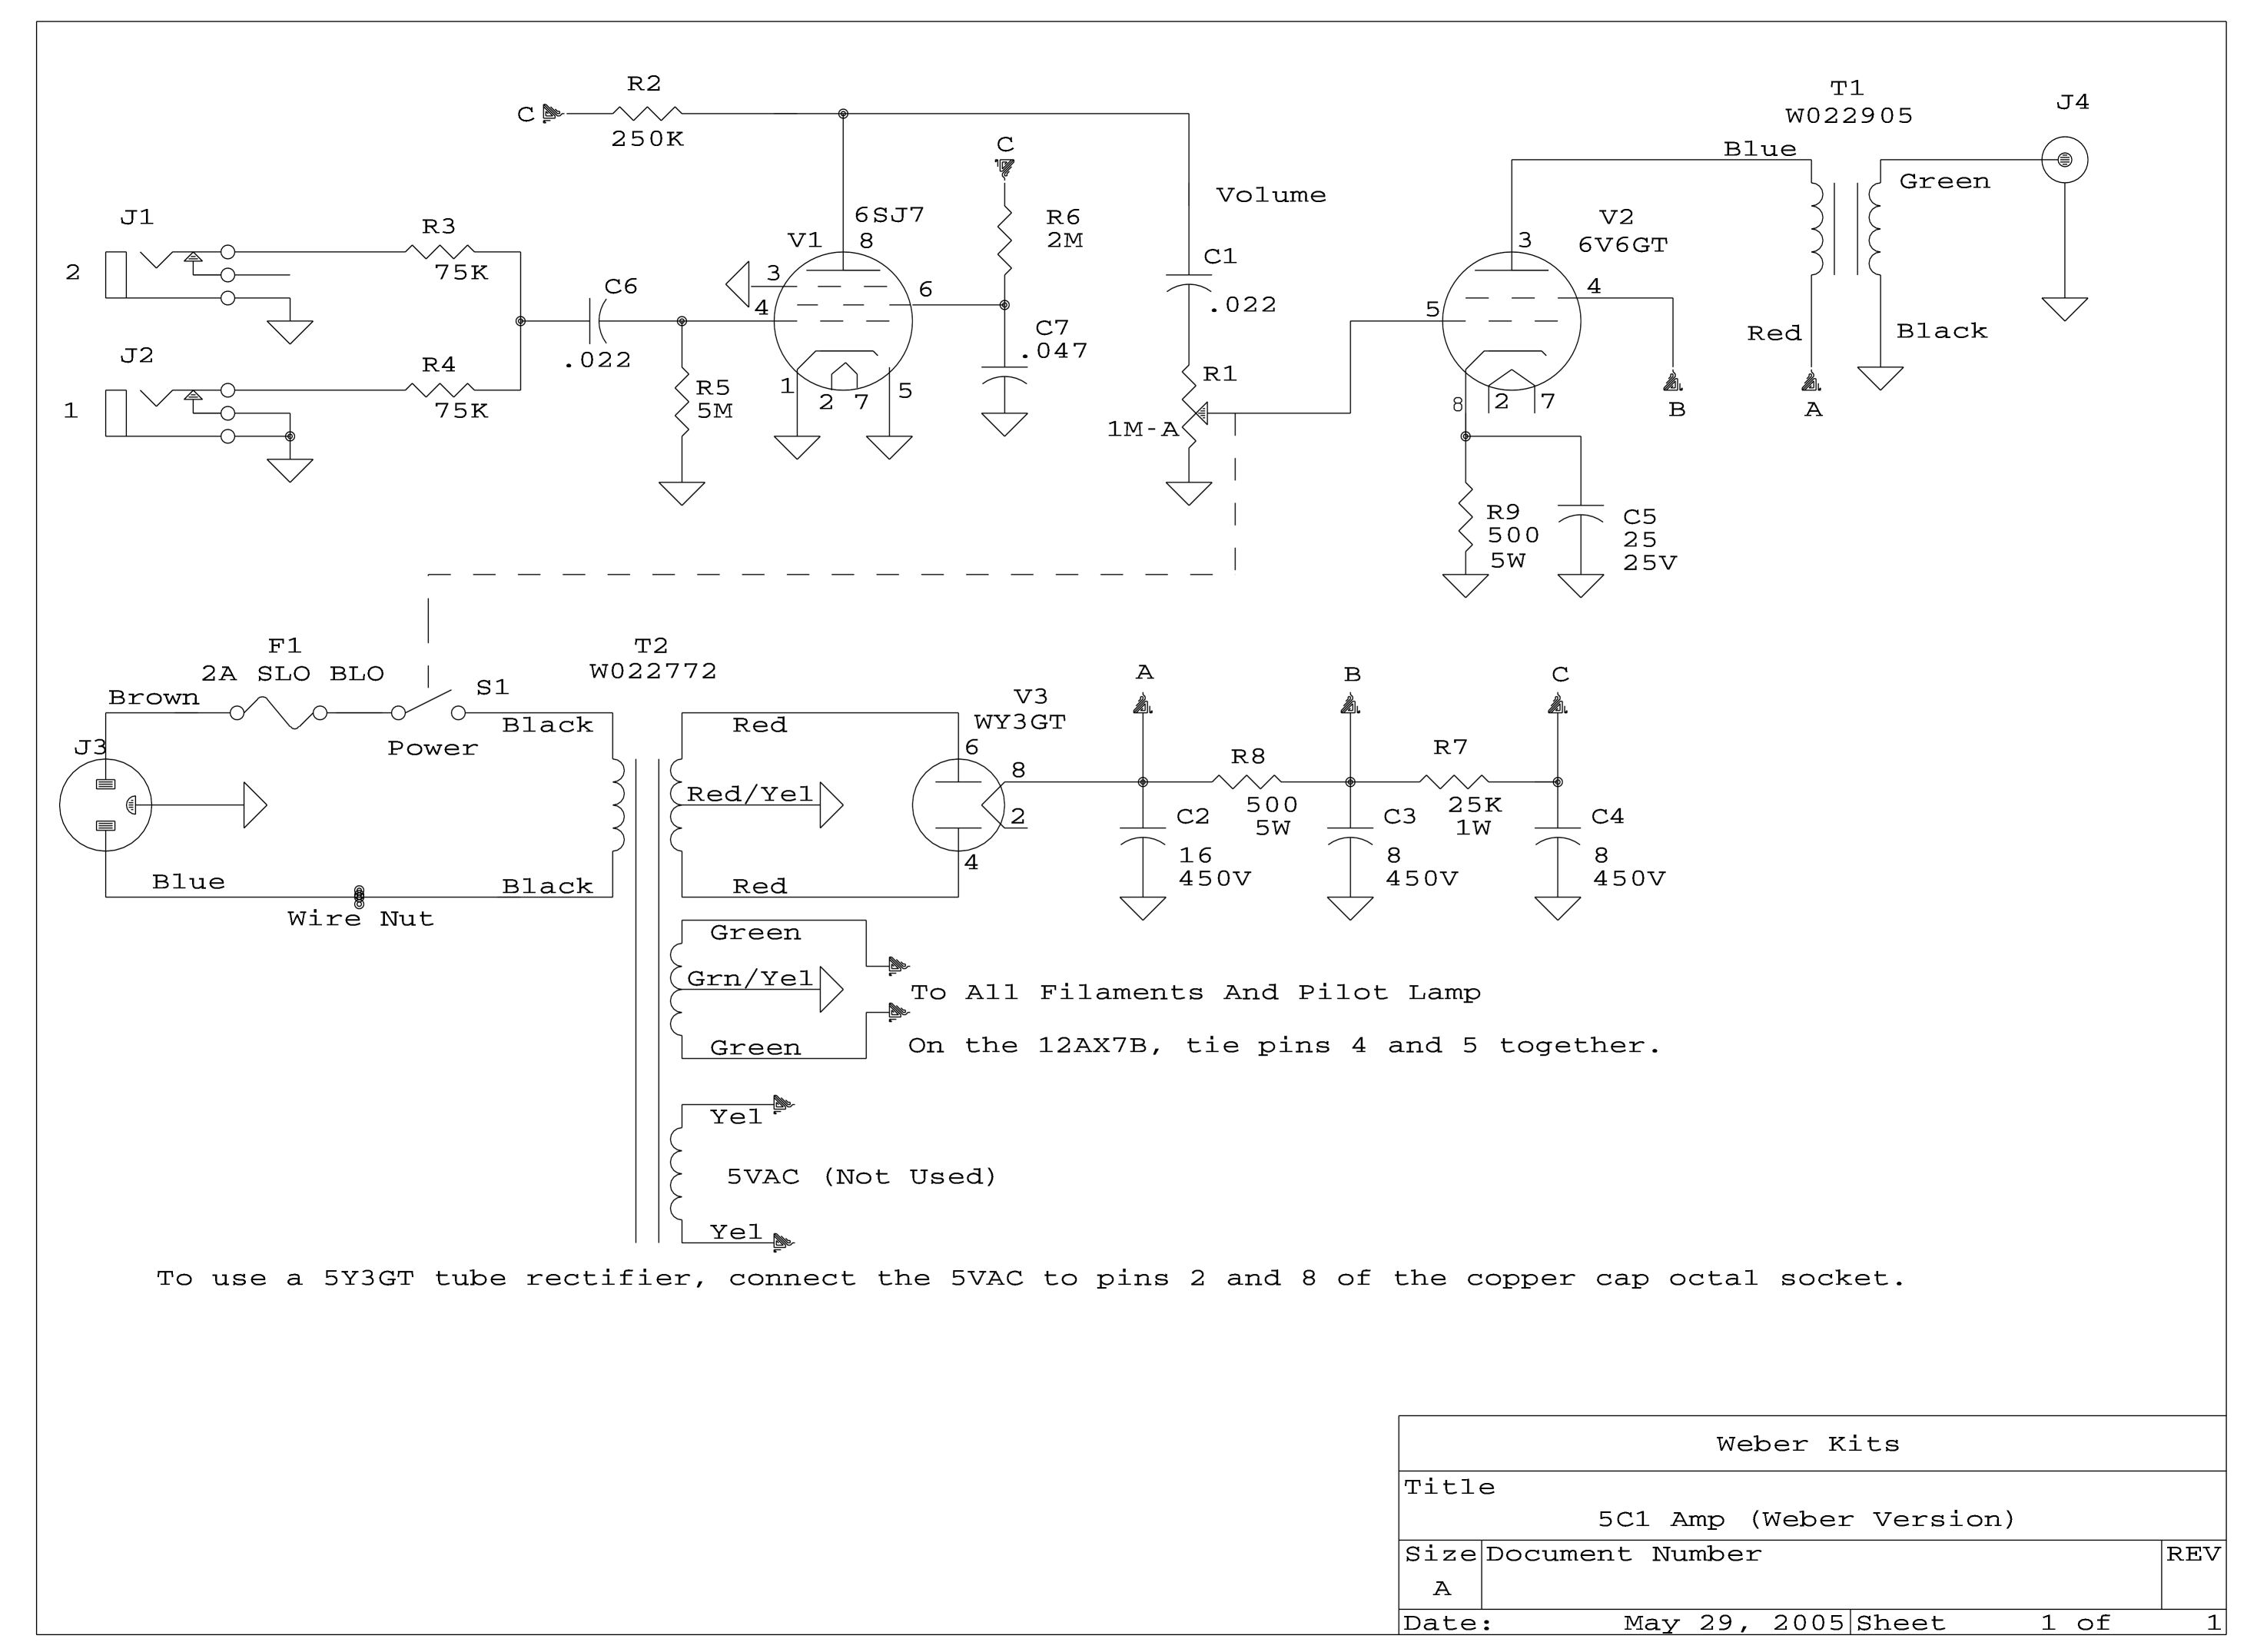 Diy Kits Weber Wiring Diagrams 5c1 Bom Layout Schematic